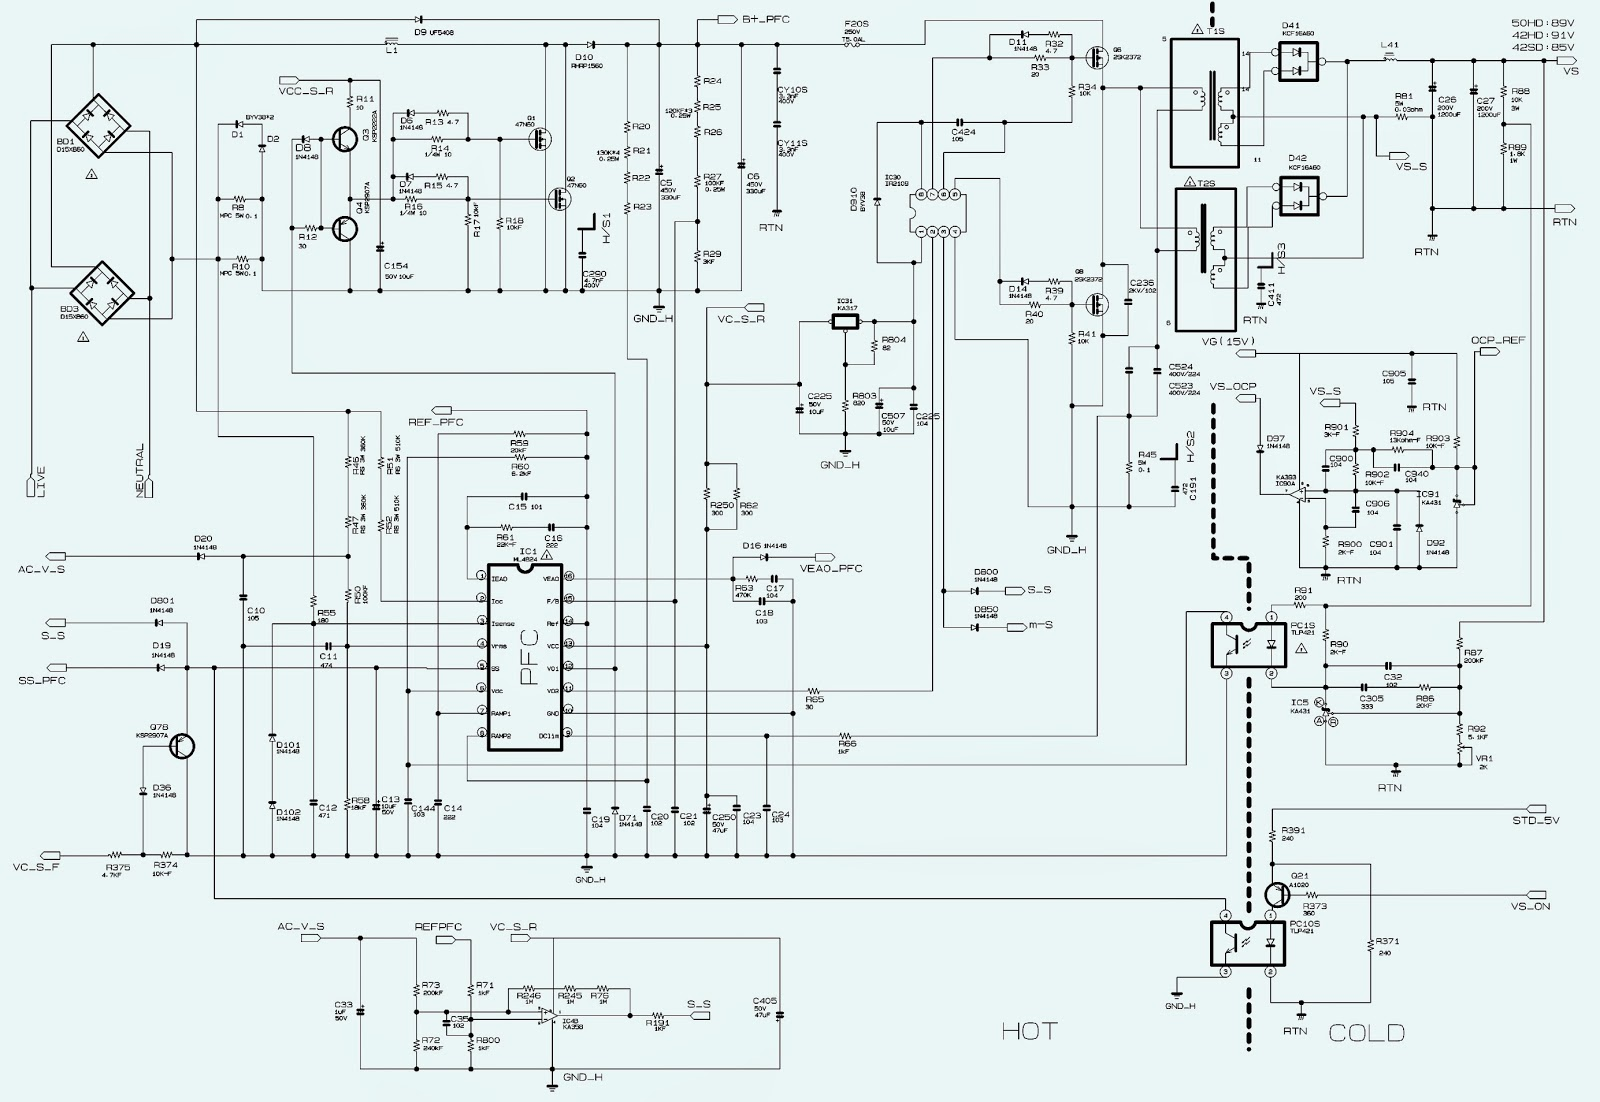 smps schematic click on the schematics to zoom in wiring diagram dat samsung b4k 5 bn96 [ 1600 x 1102 Pixel ]